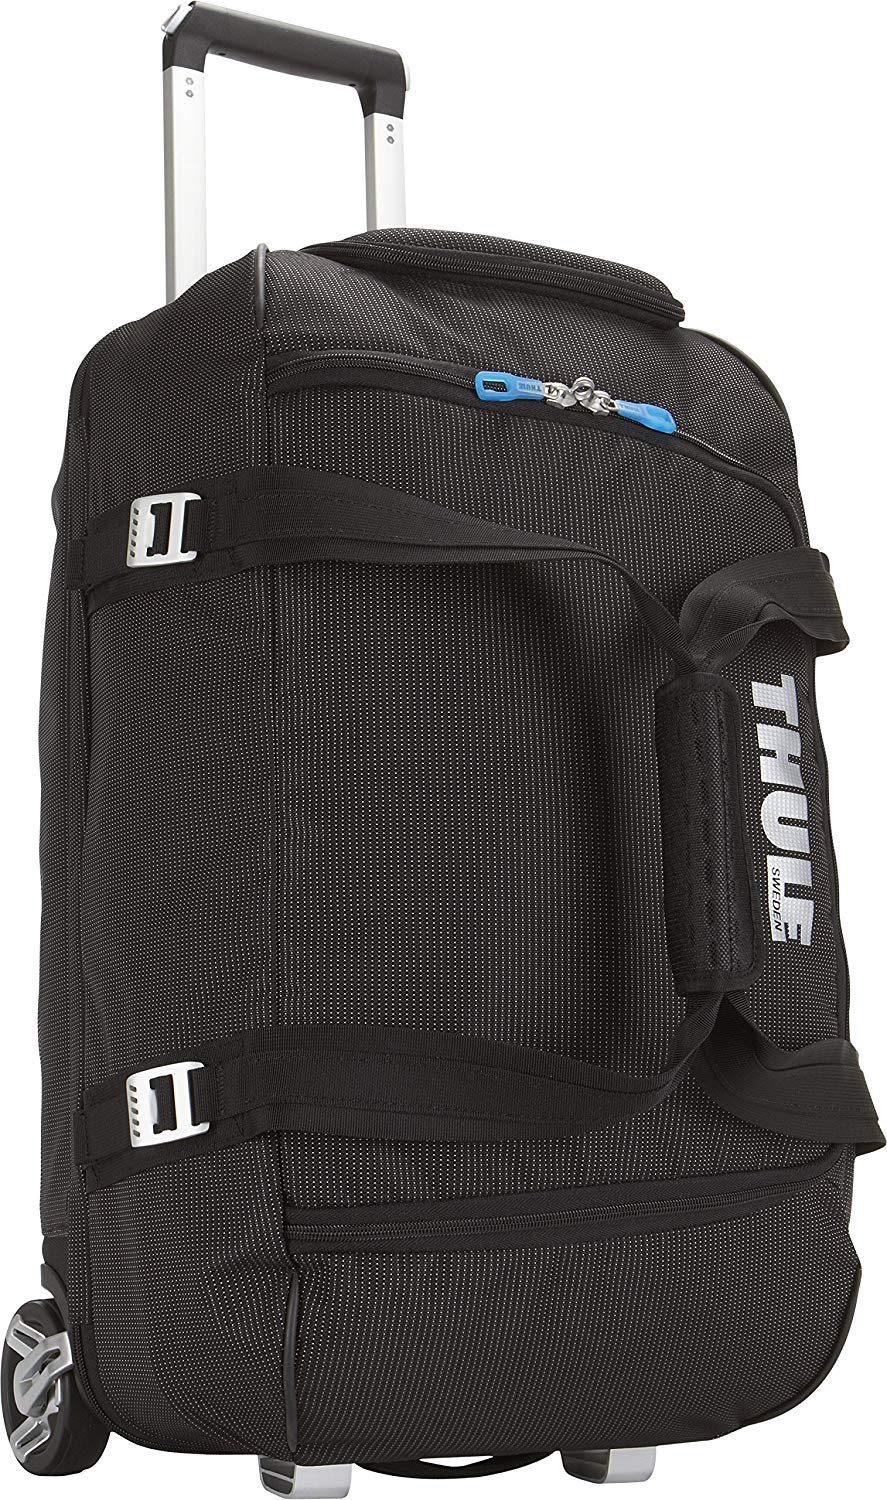 953d6b9fa883 Buy Thule Crossover 40 Liter Duffel Pack - TCDP-1 (Black - One Size ...